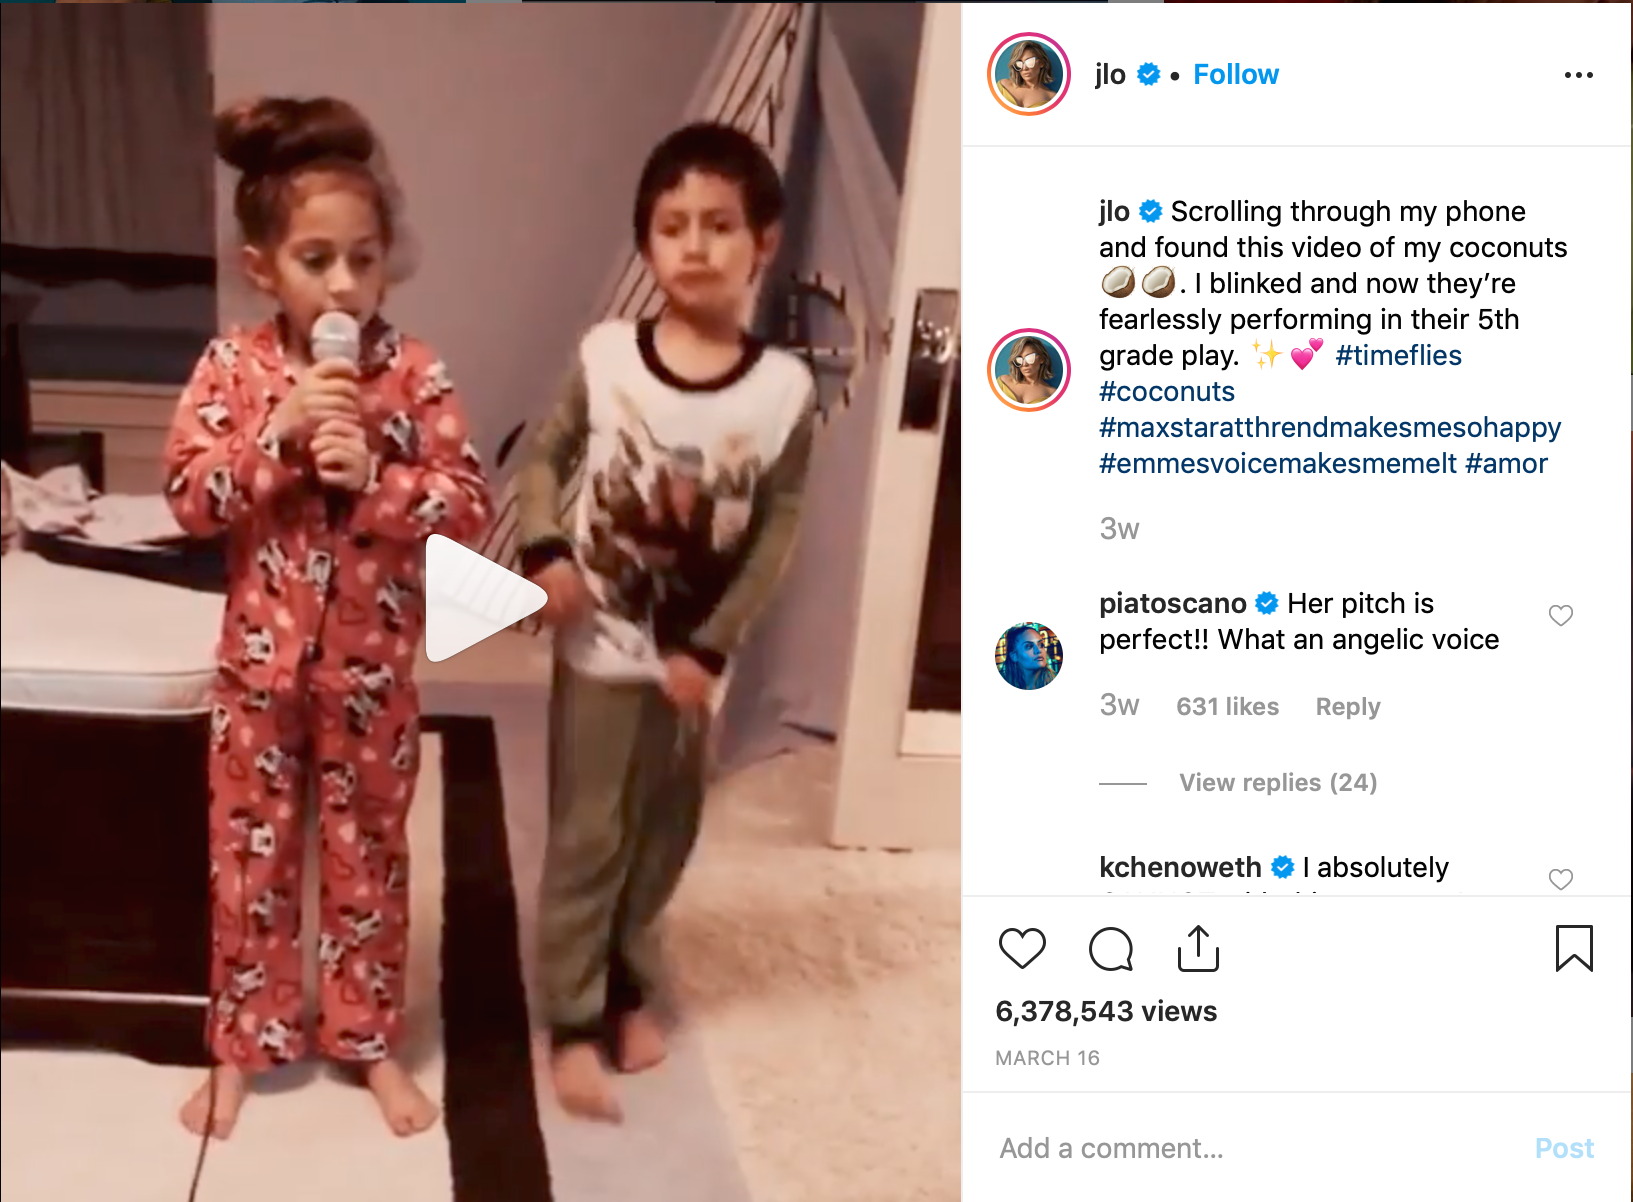 Figure 4. Jennifer Lopez's twins are singing in their pyjamas demonstrating an intimate family moment